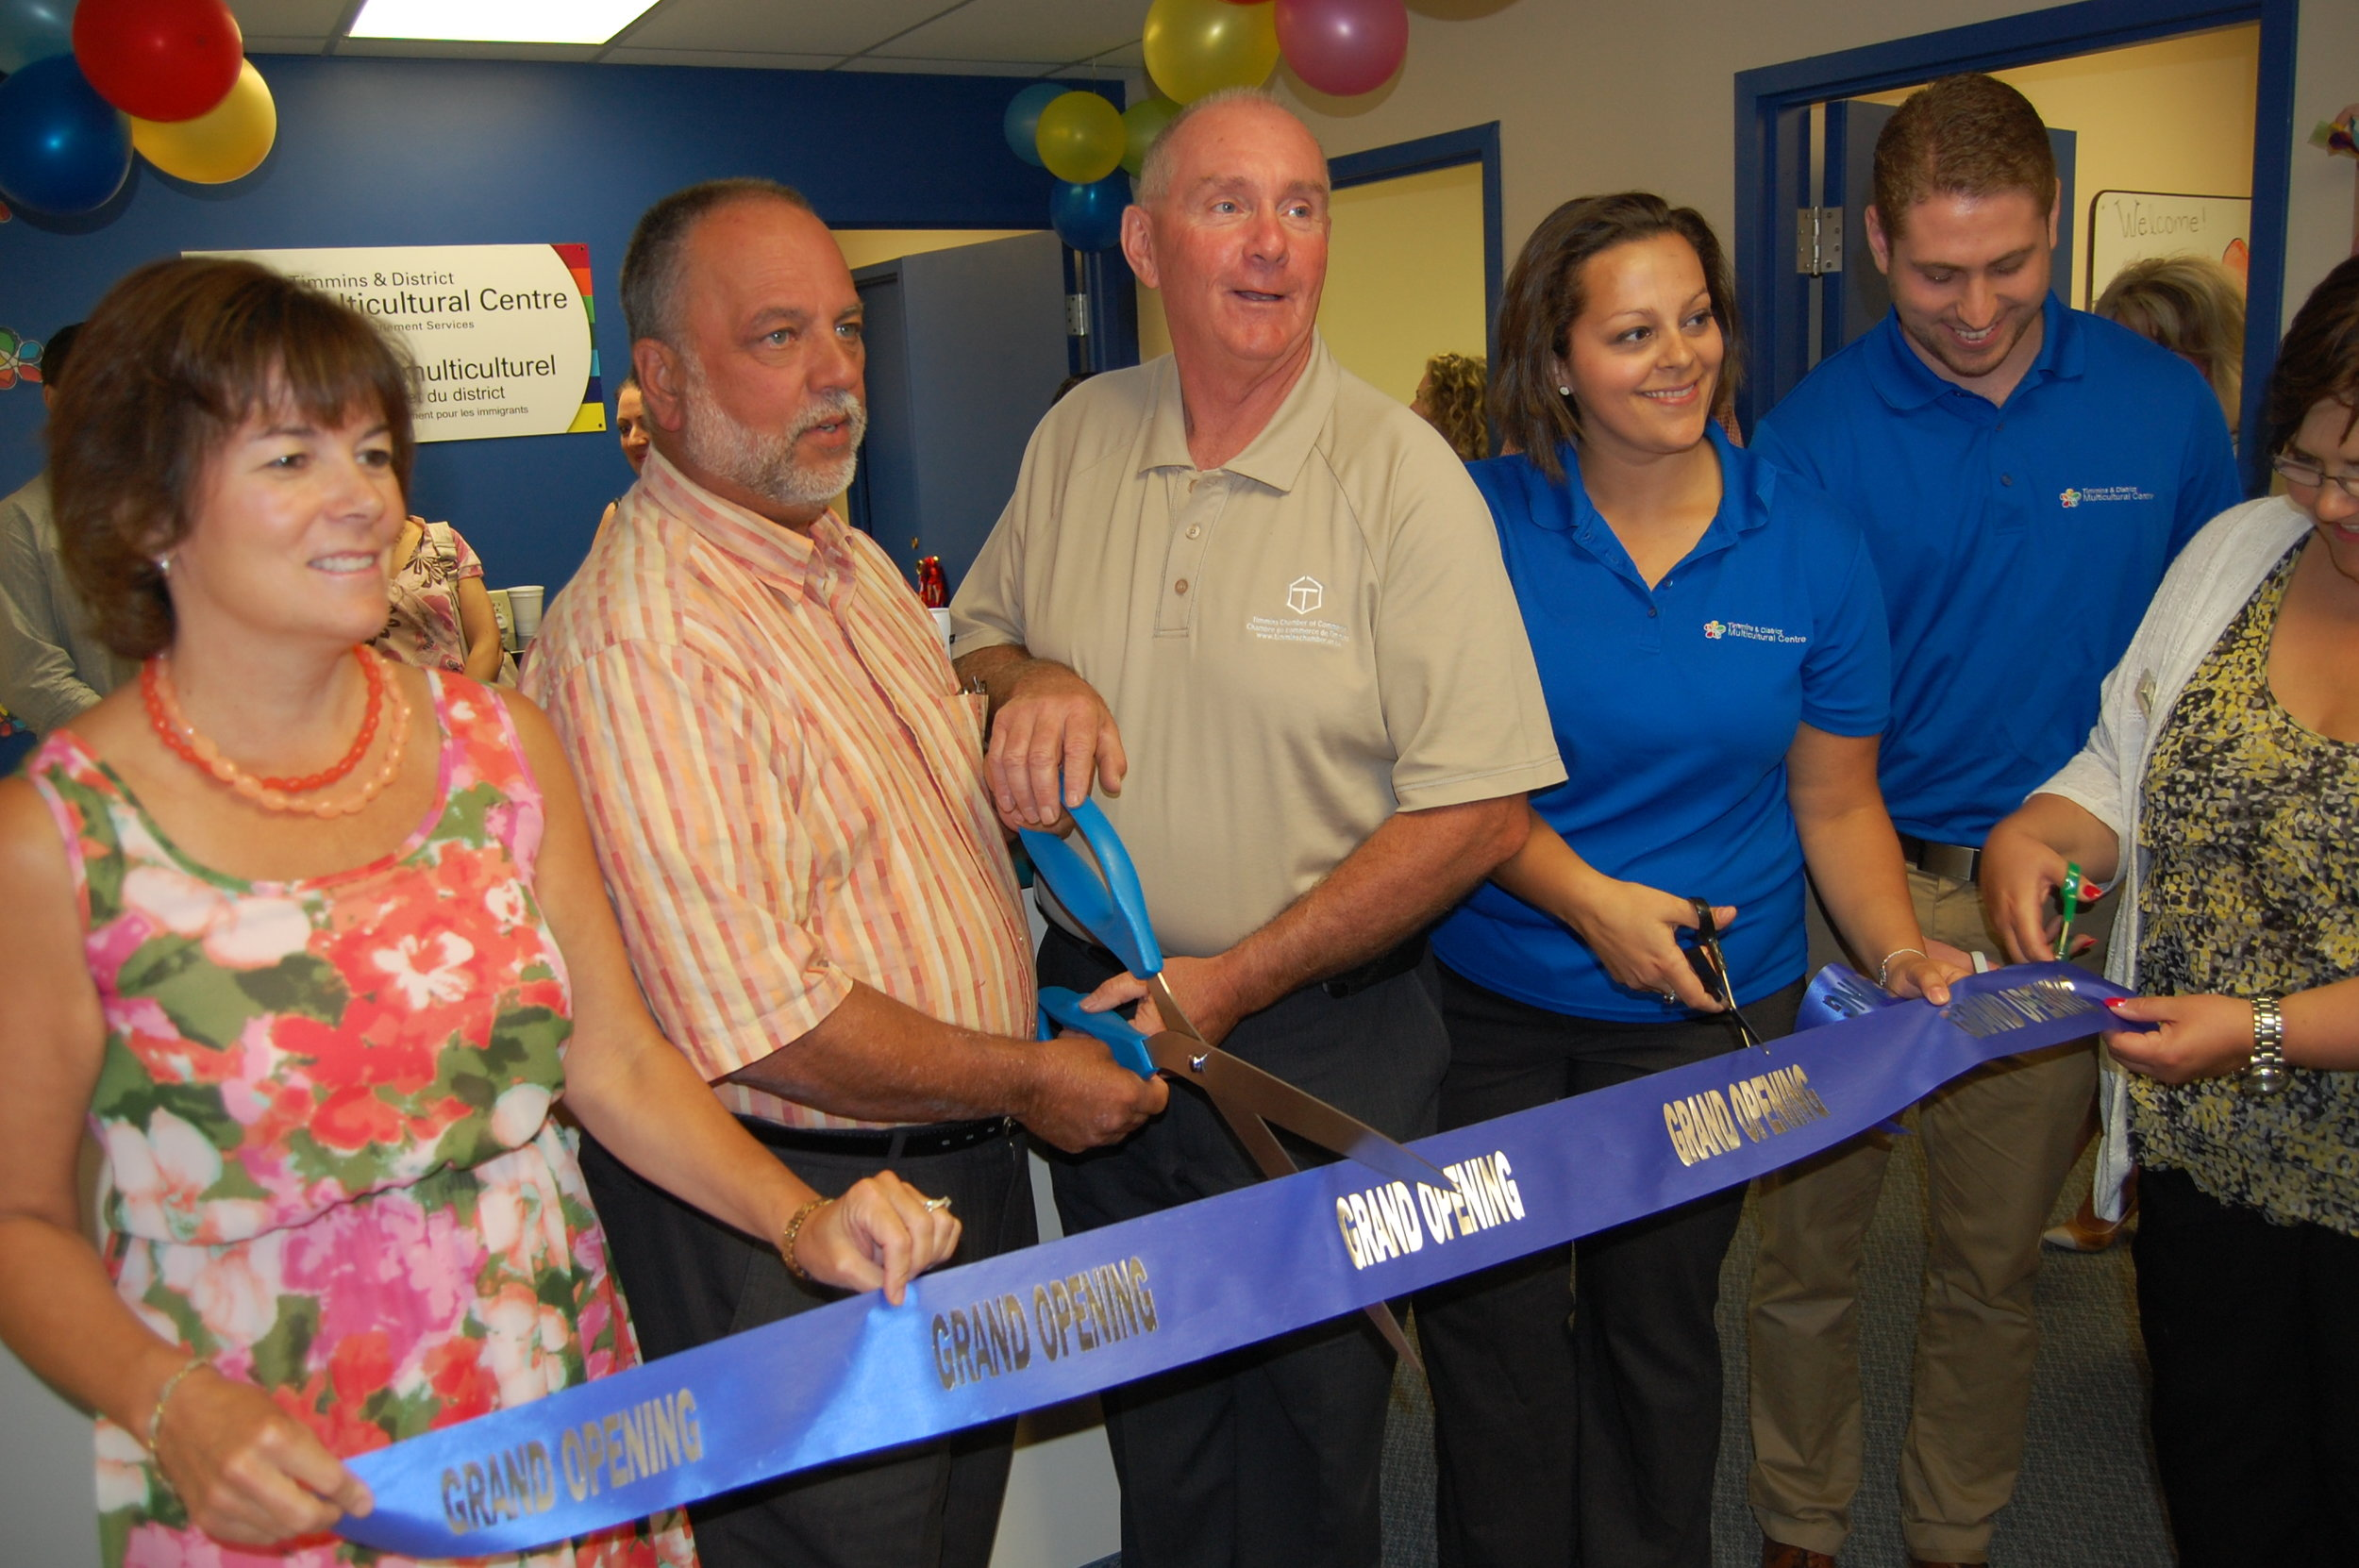 Grand opening at our second and current location, 119 Pine Street South, Suite 10.